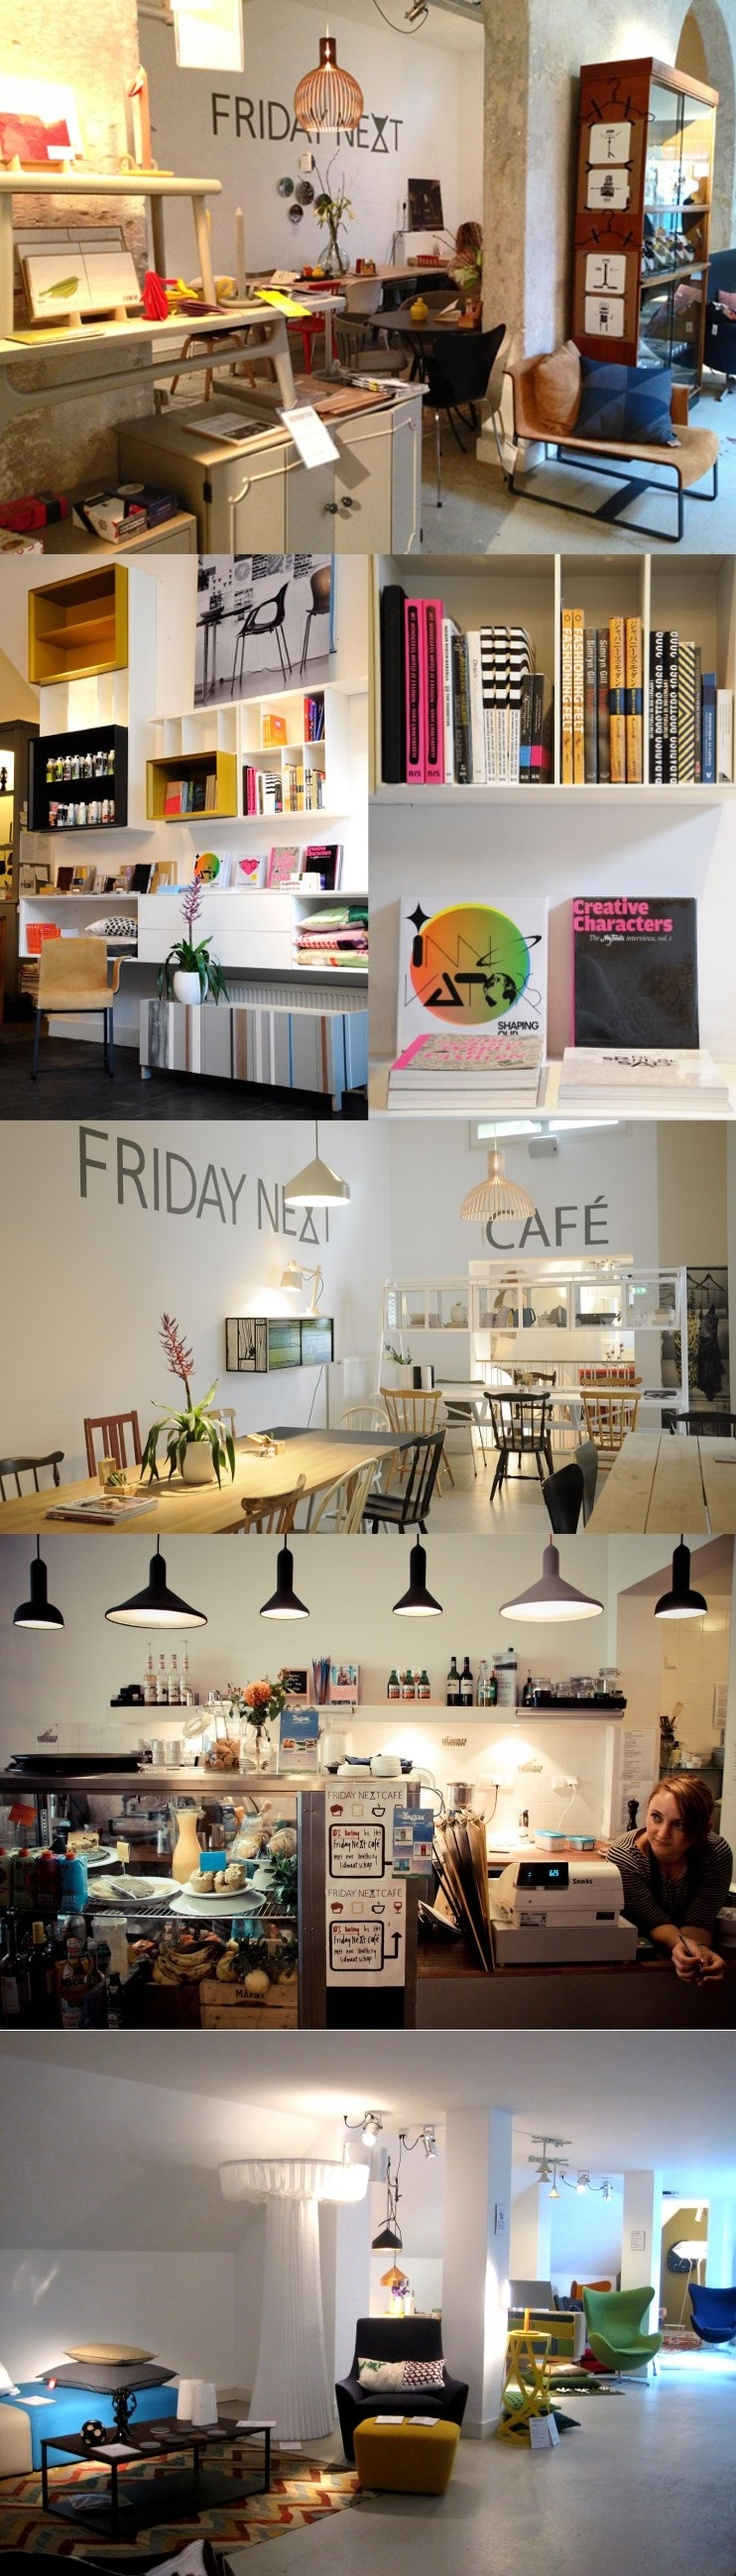 Friday Next A Concept Store Cafe Interior Design Shop And Gallery Space In